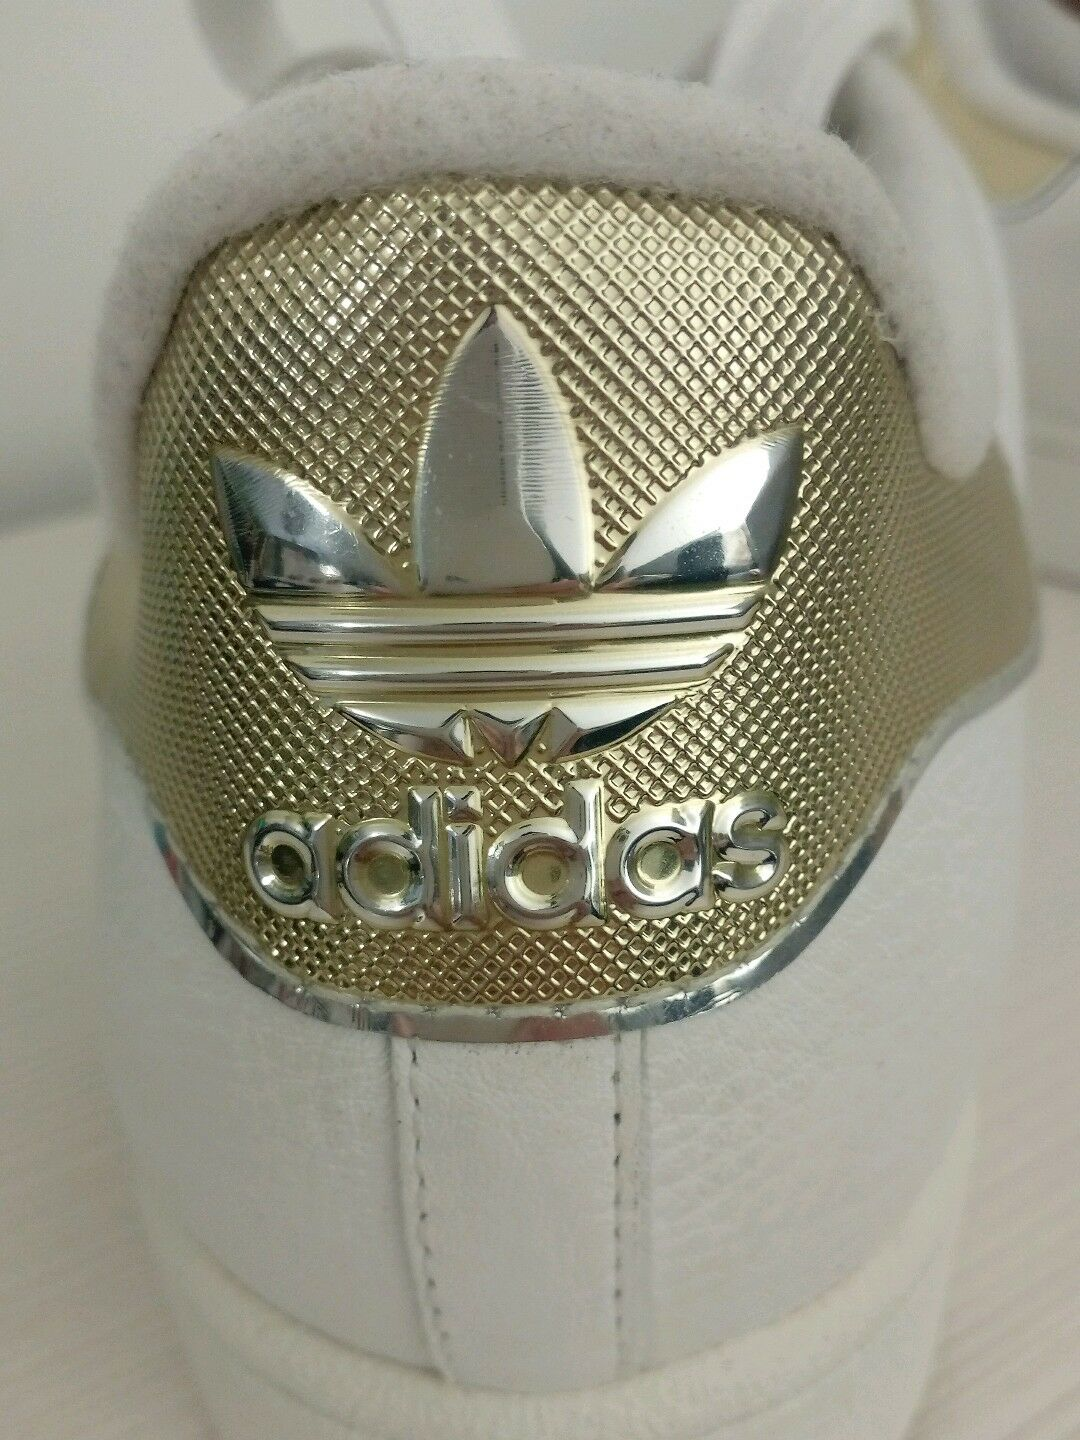 Sneakers Adidas Superstar 2 White Limited Rare 3D color gold-Platinum US 9.5